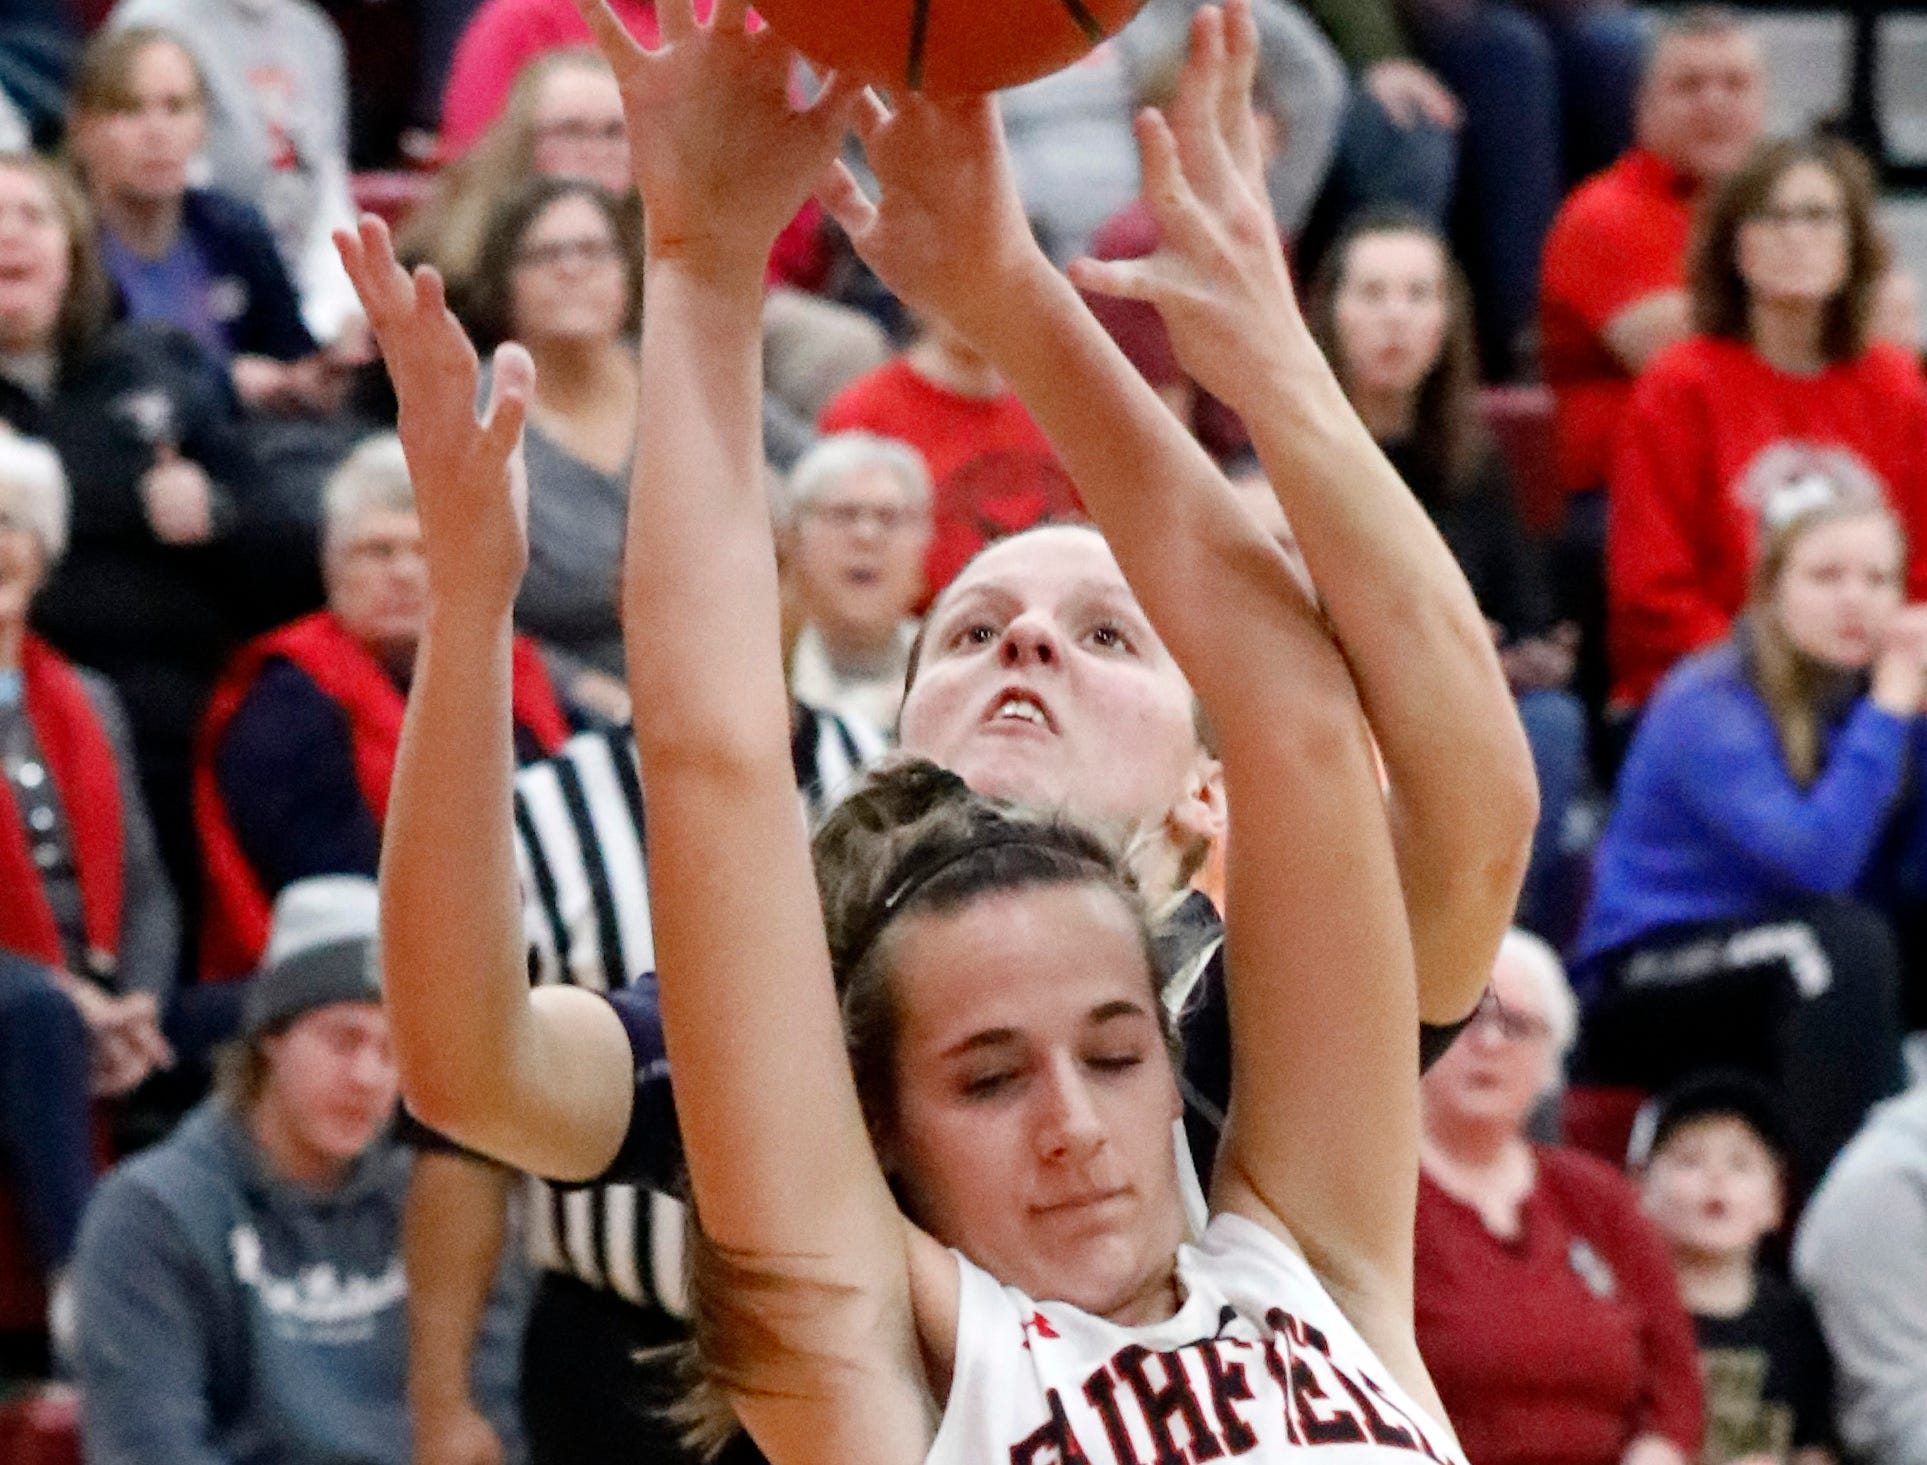 Fairfield Union's Hannah Rauch reaches back for a rebound as she and Teays Valley's Kierstyn Liming reaches for the ball Friday night, Jan. 25, 2019, at Fairfield Union High School in Rushville. The Falcons lost the game 67-42.